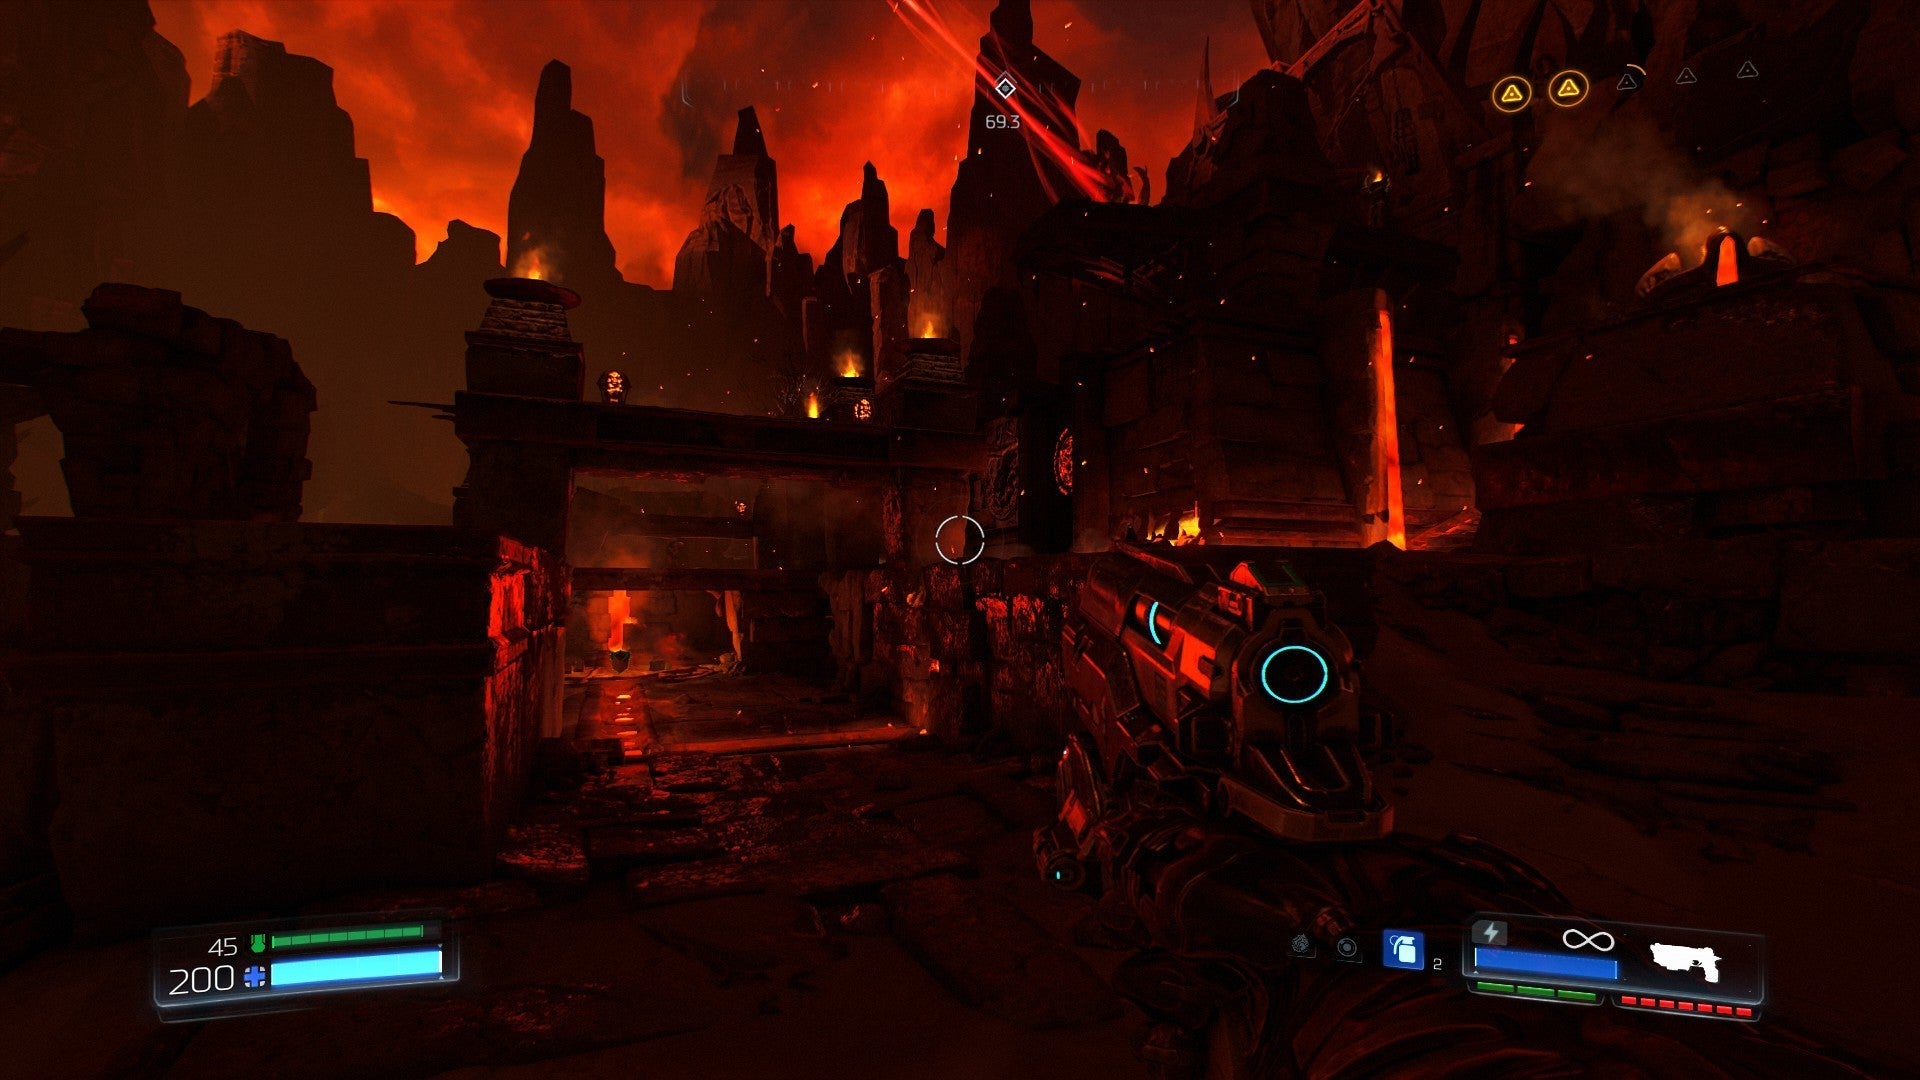 Doom review (PC): Glorious guns, gibs, and more guns | PCWorld